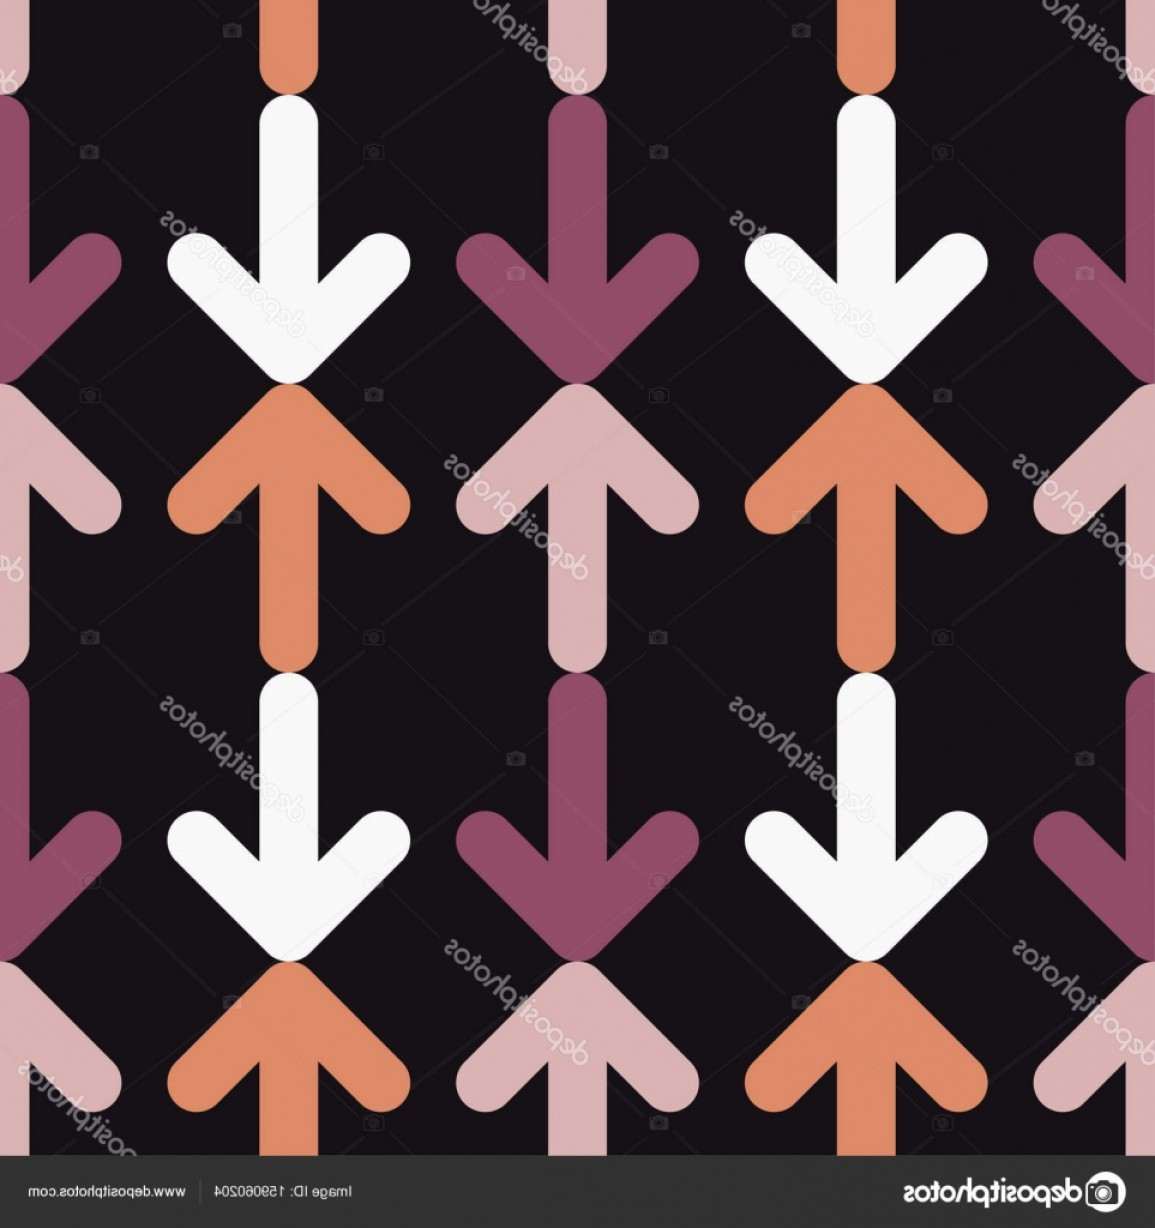 Rapport Vector: Stock Illustration Seamless Vector Background With Decorative